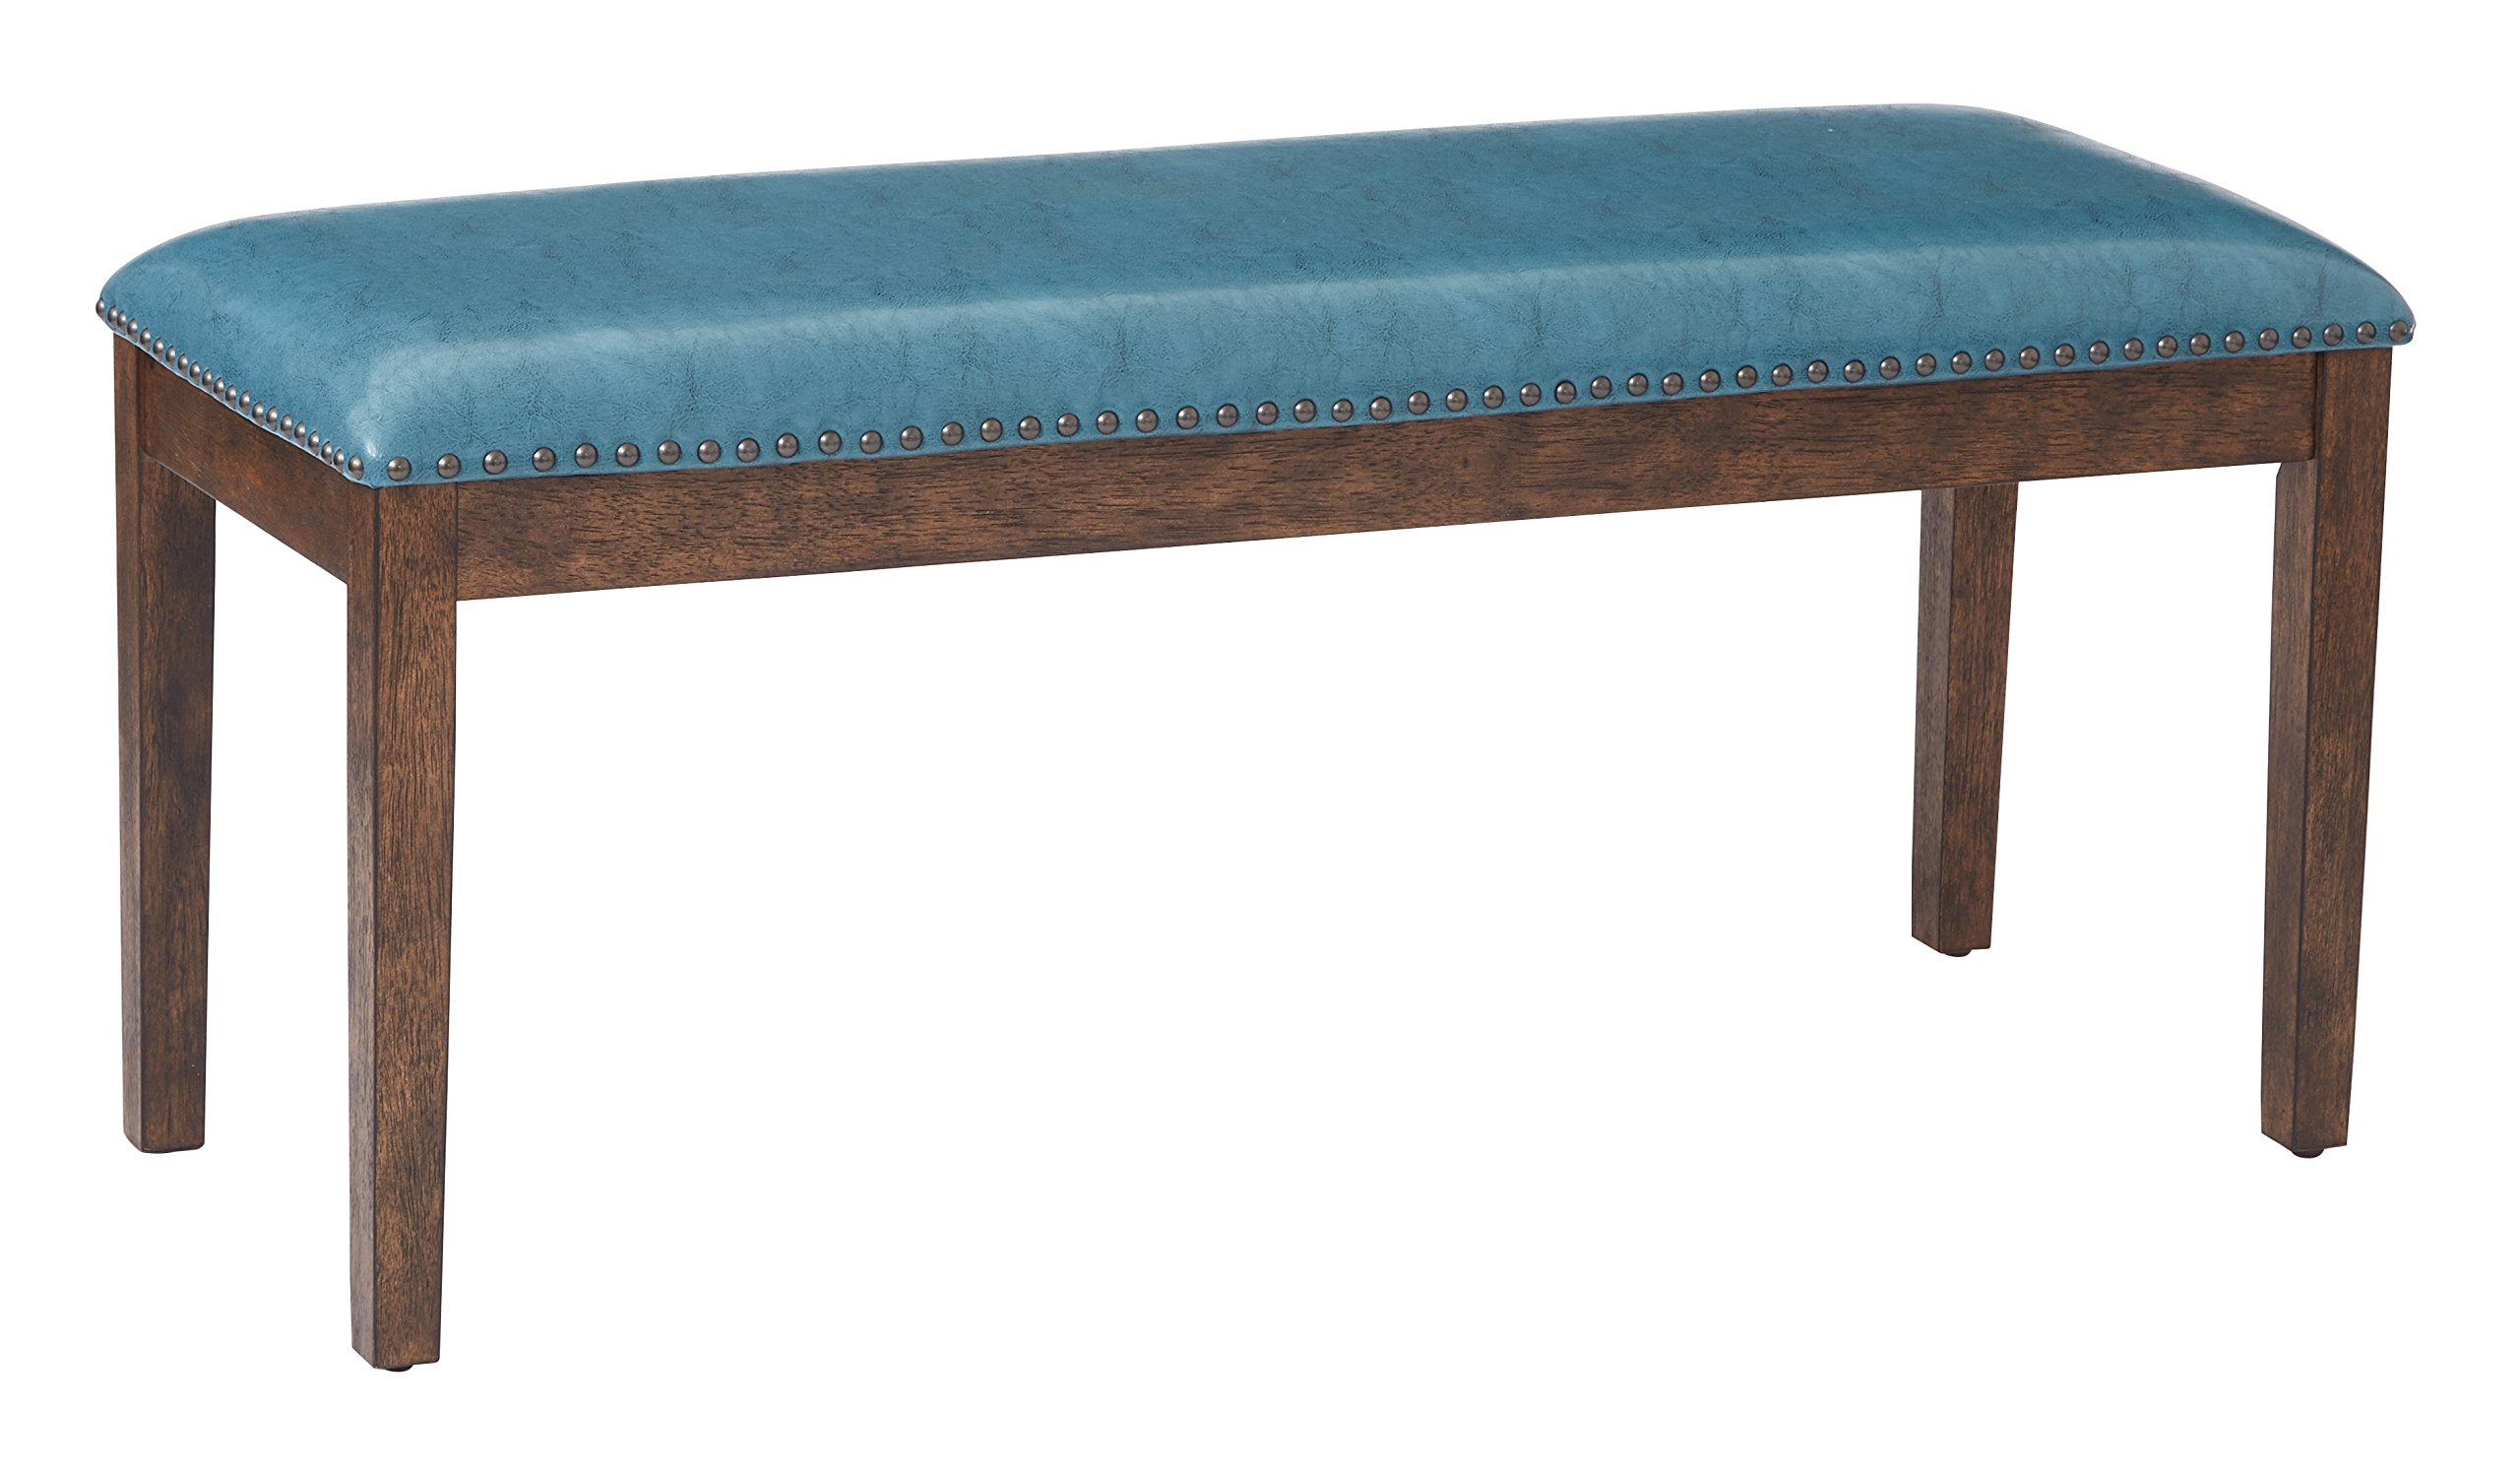 Office Star Langston Faux Leather Bench with Wood Frame and Nailhead Accents, Blue